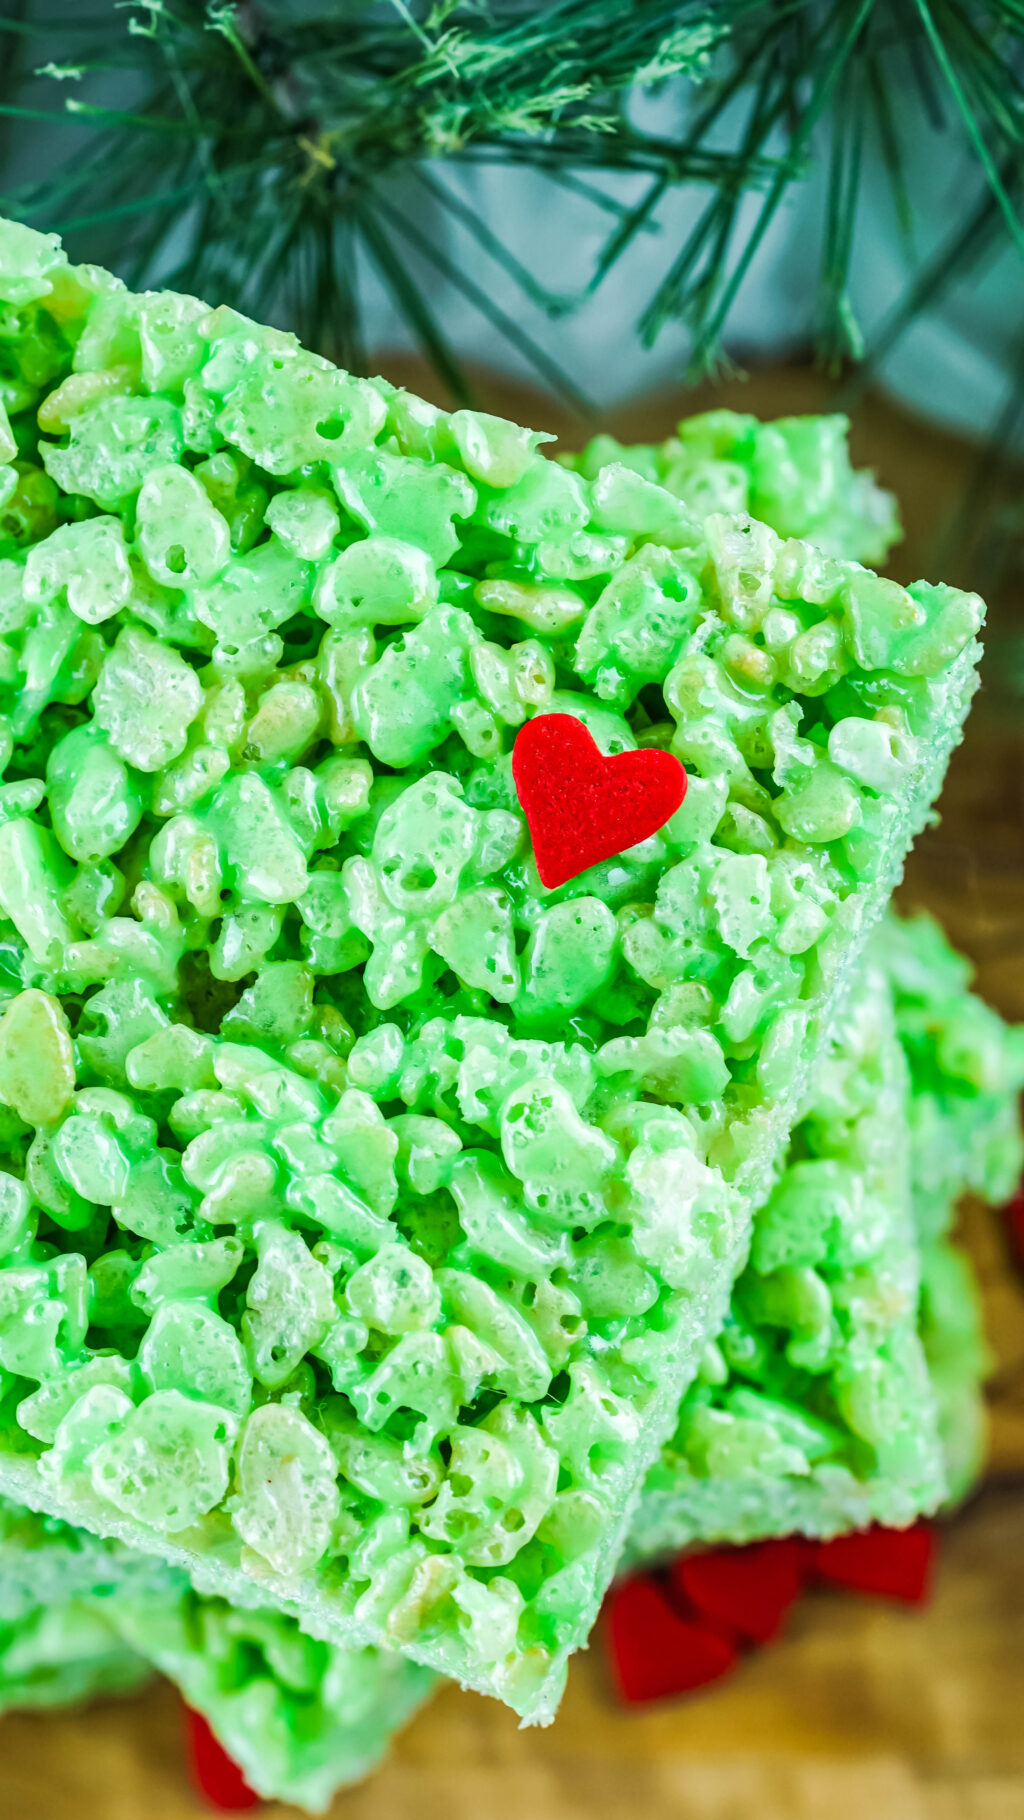 green grinch rice krispies treat up close